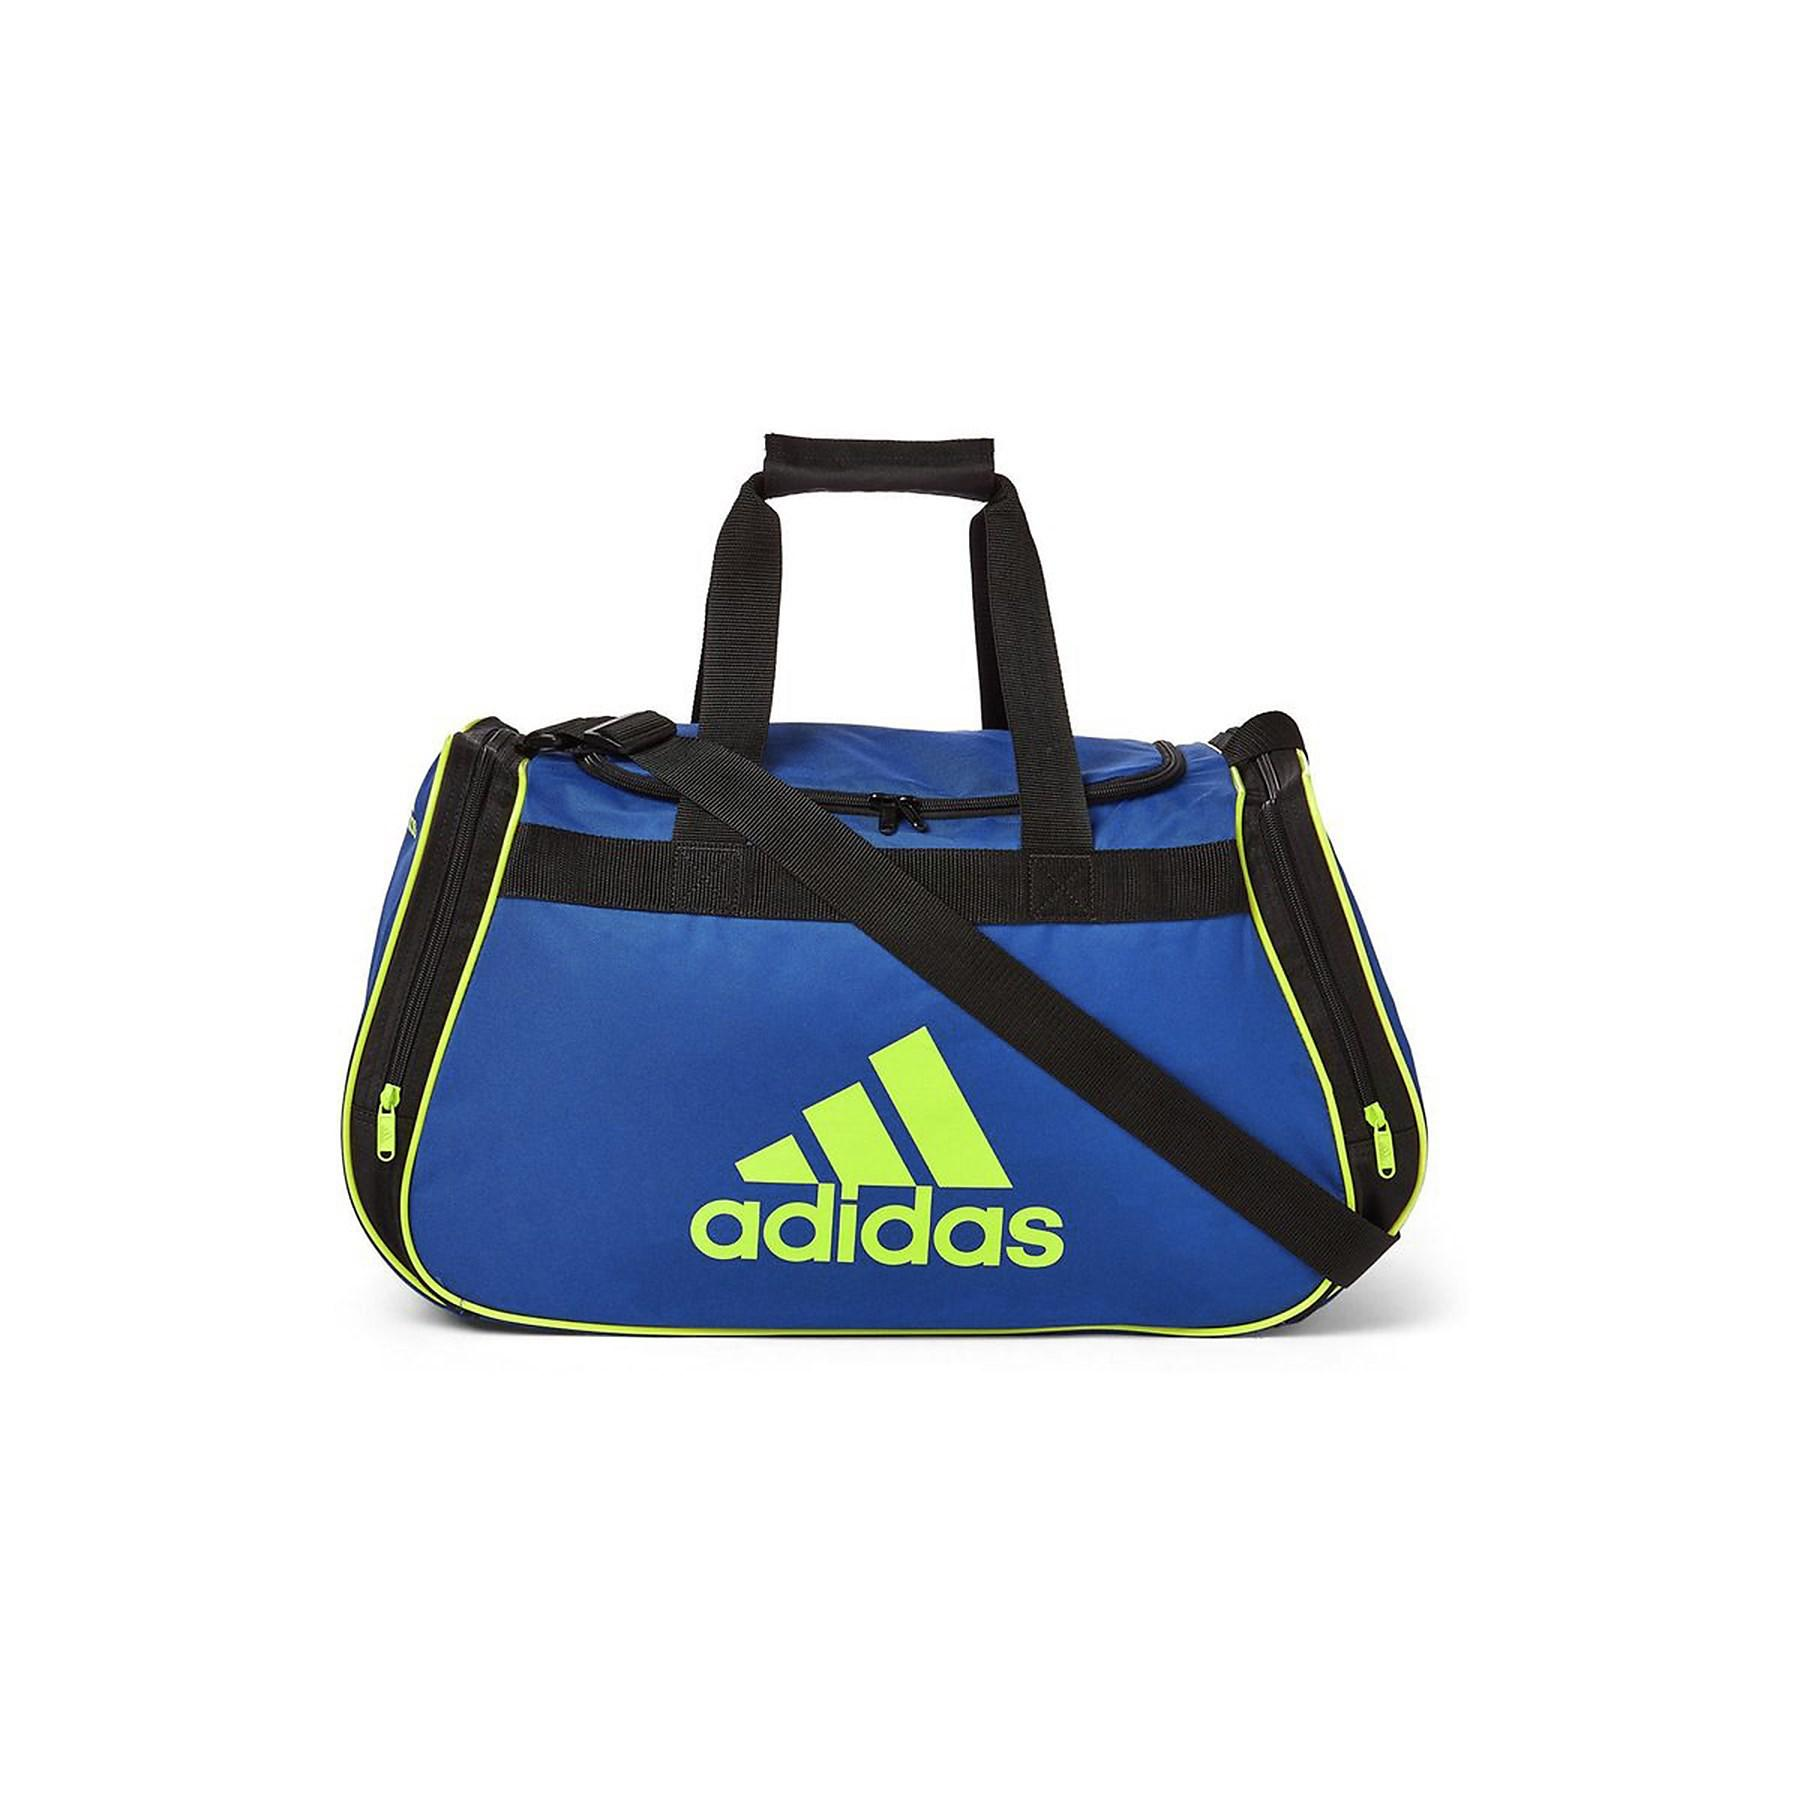 7455809021 Lyst - adidas Diablo Medium Duffel Bag Ii in Blue for Men